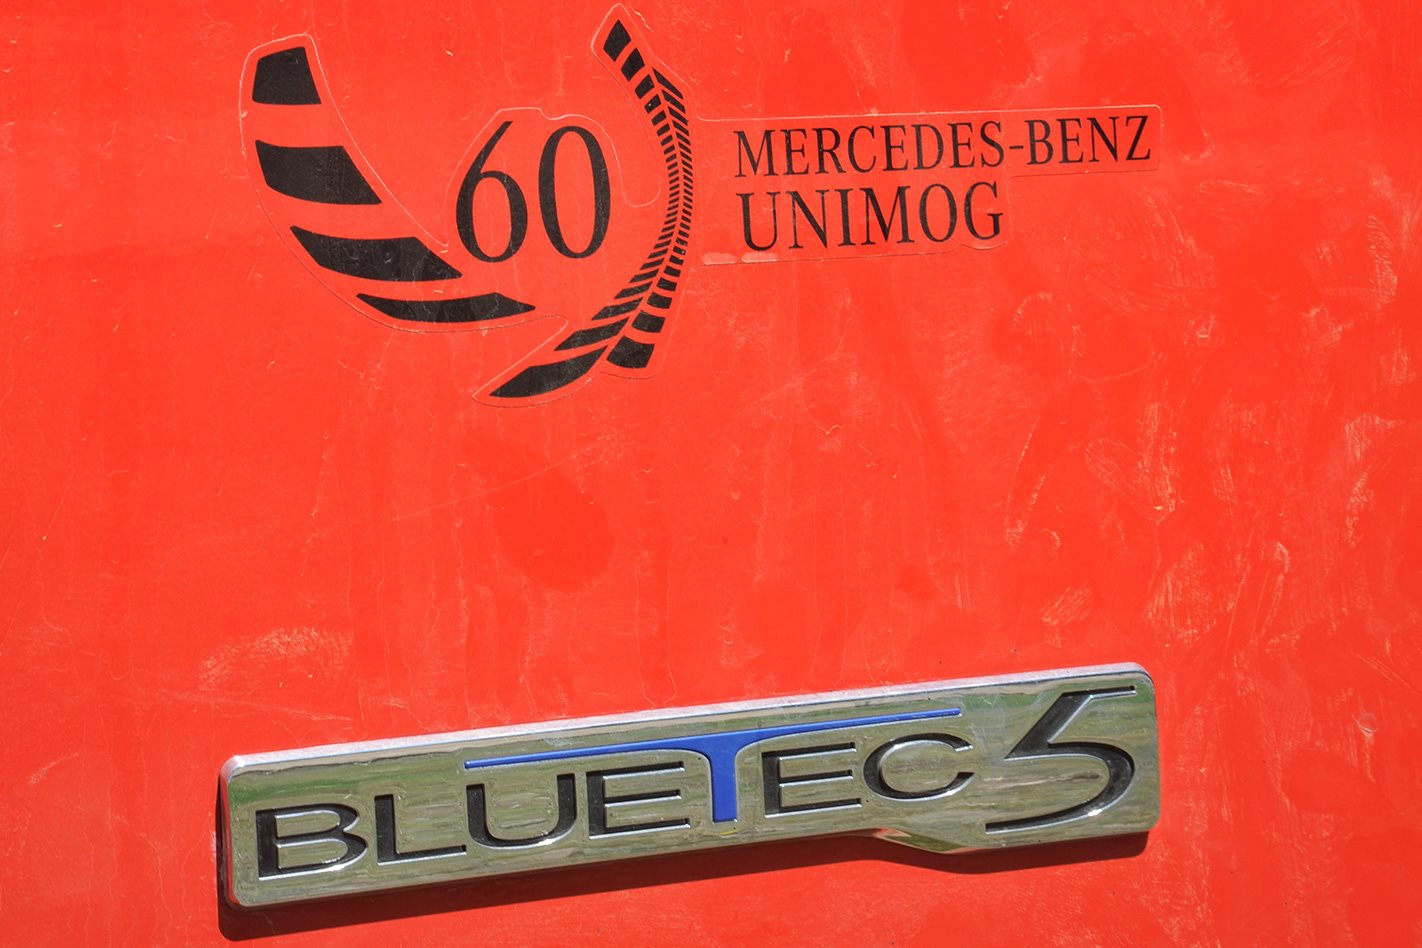 Mercedes Benz Unimog U5000 badge